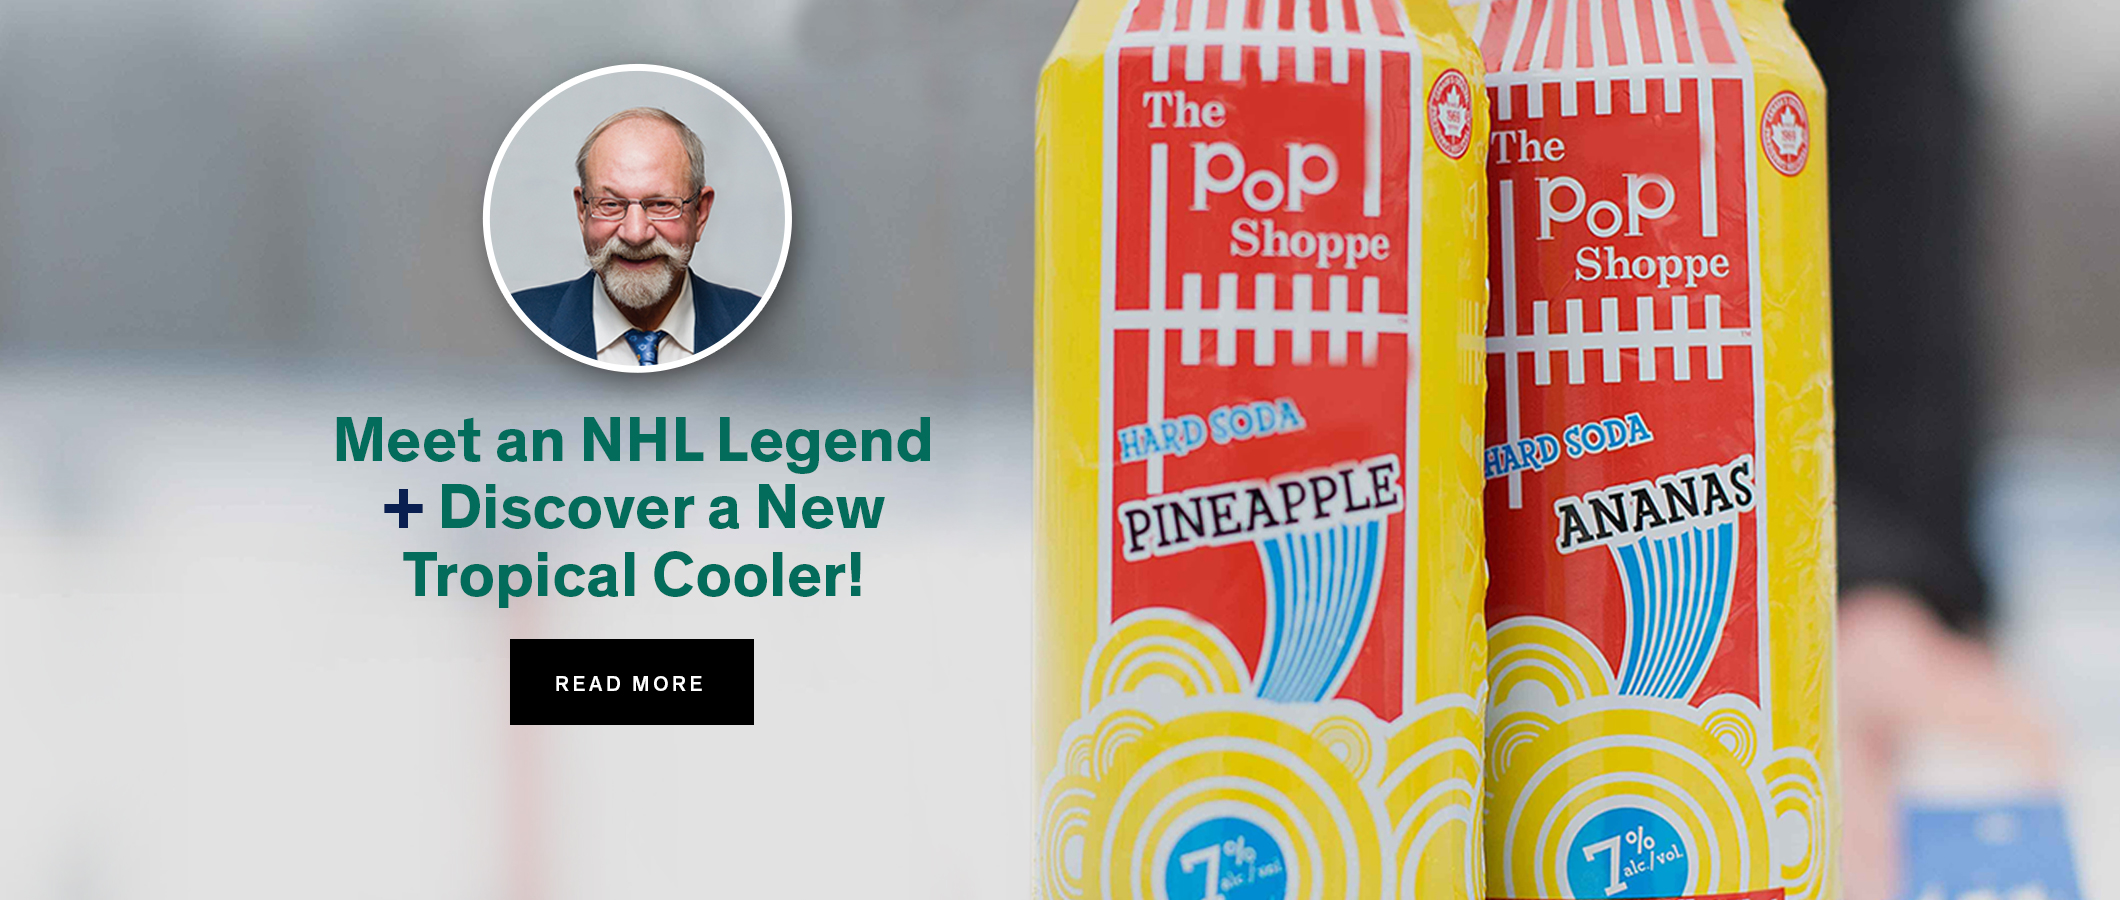 Meet an NHL Legend + Discover a New Tropical Cooler!  READ MORE